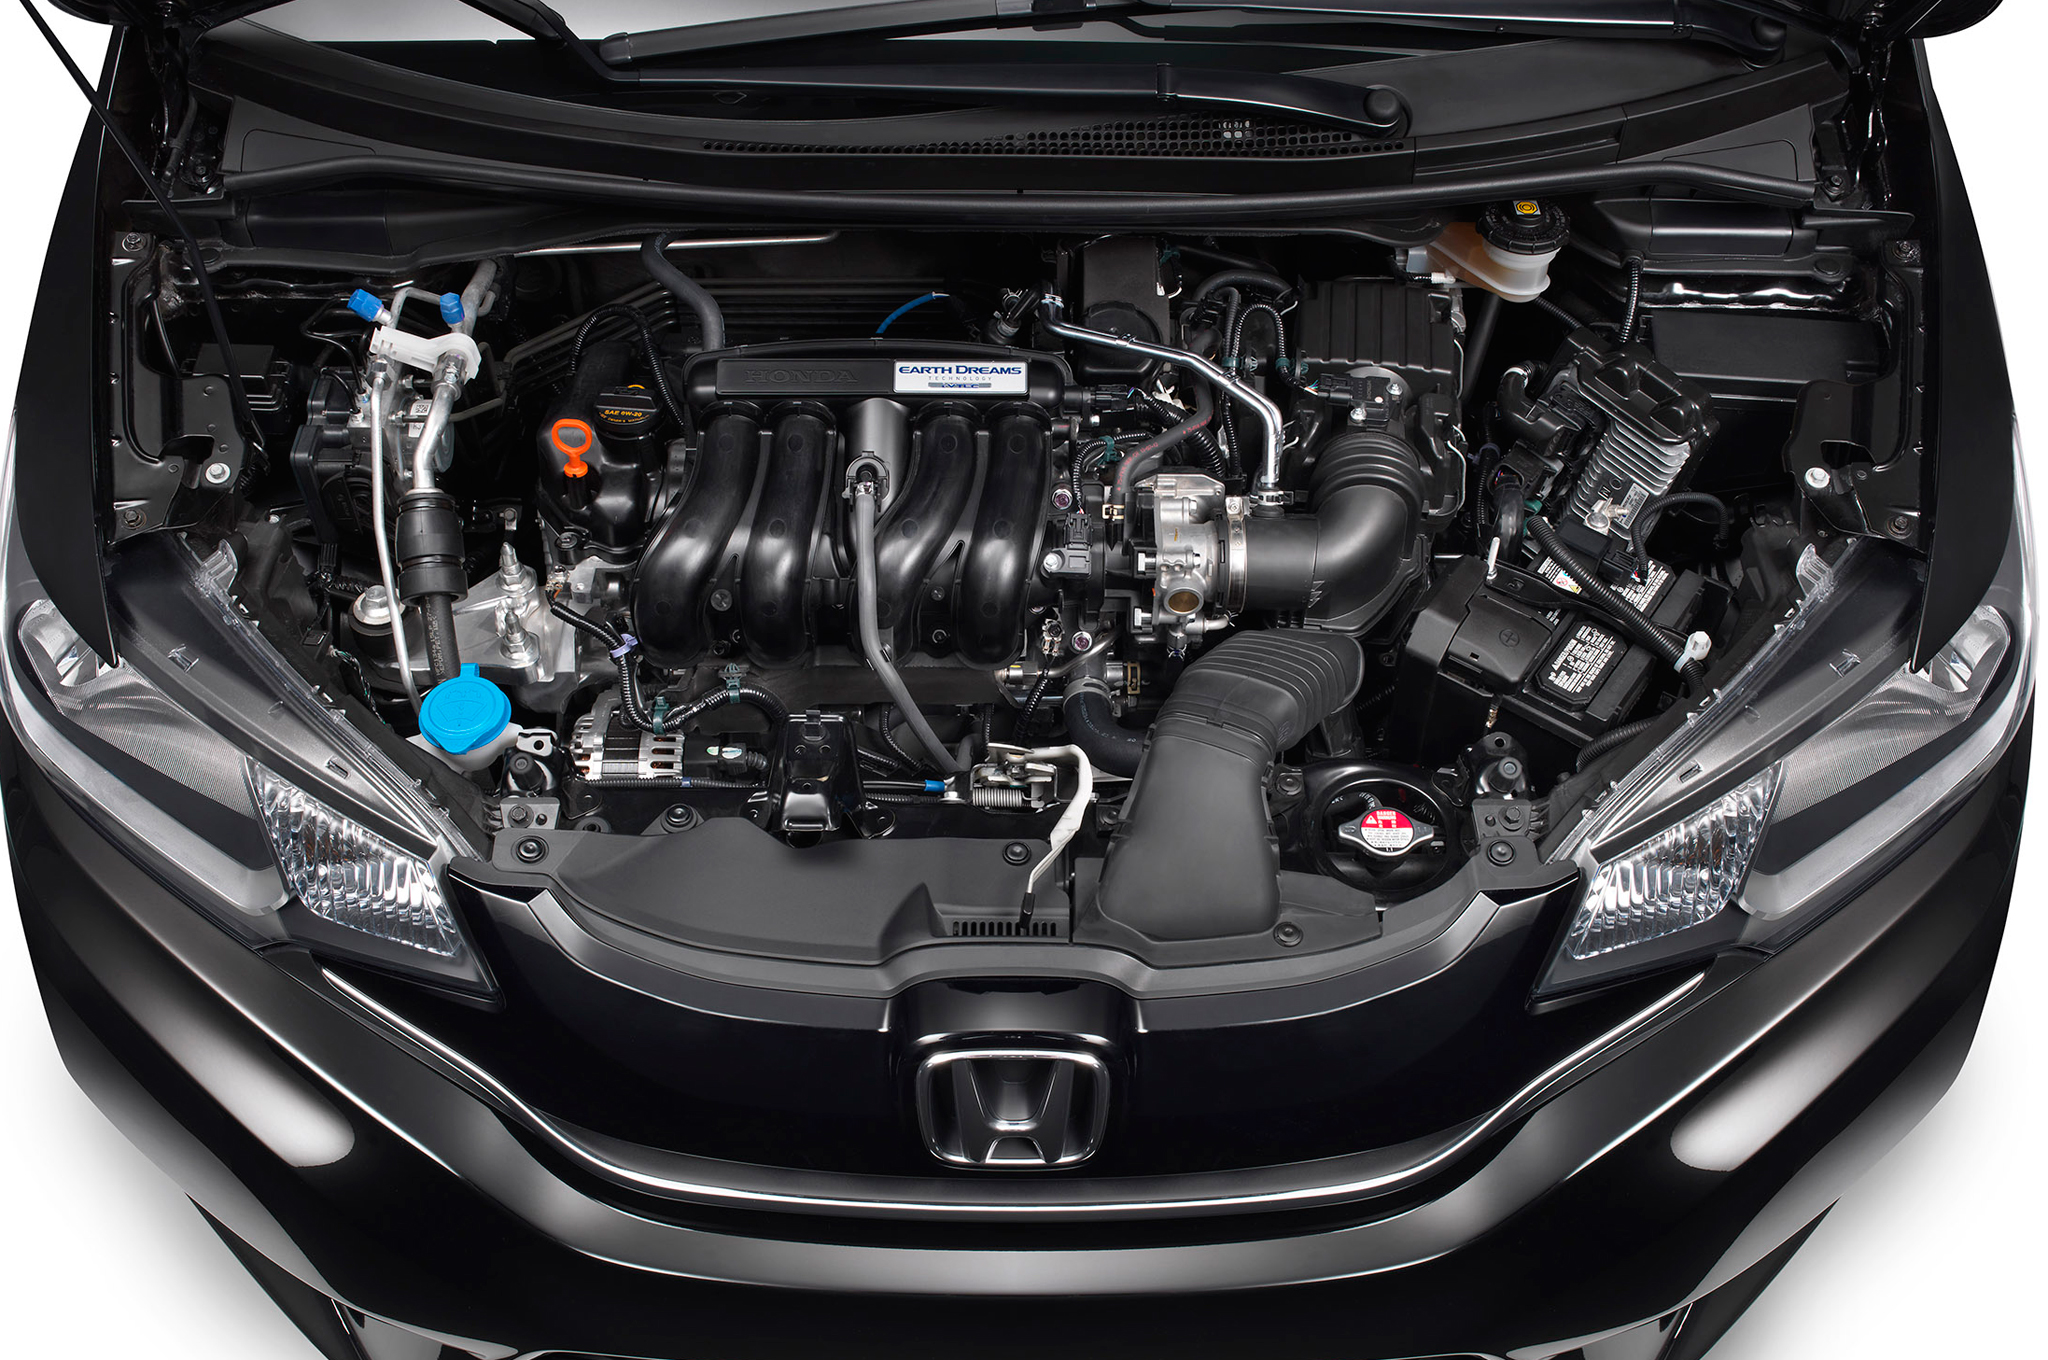 2015 Honda Fit Engine Profile (View 14 of 16)